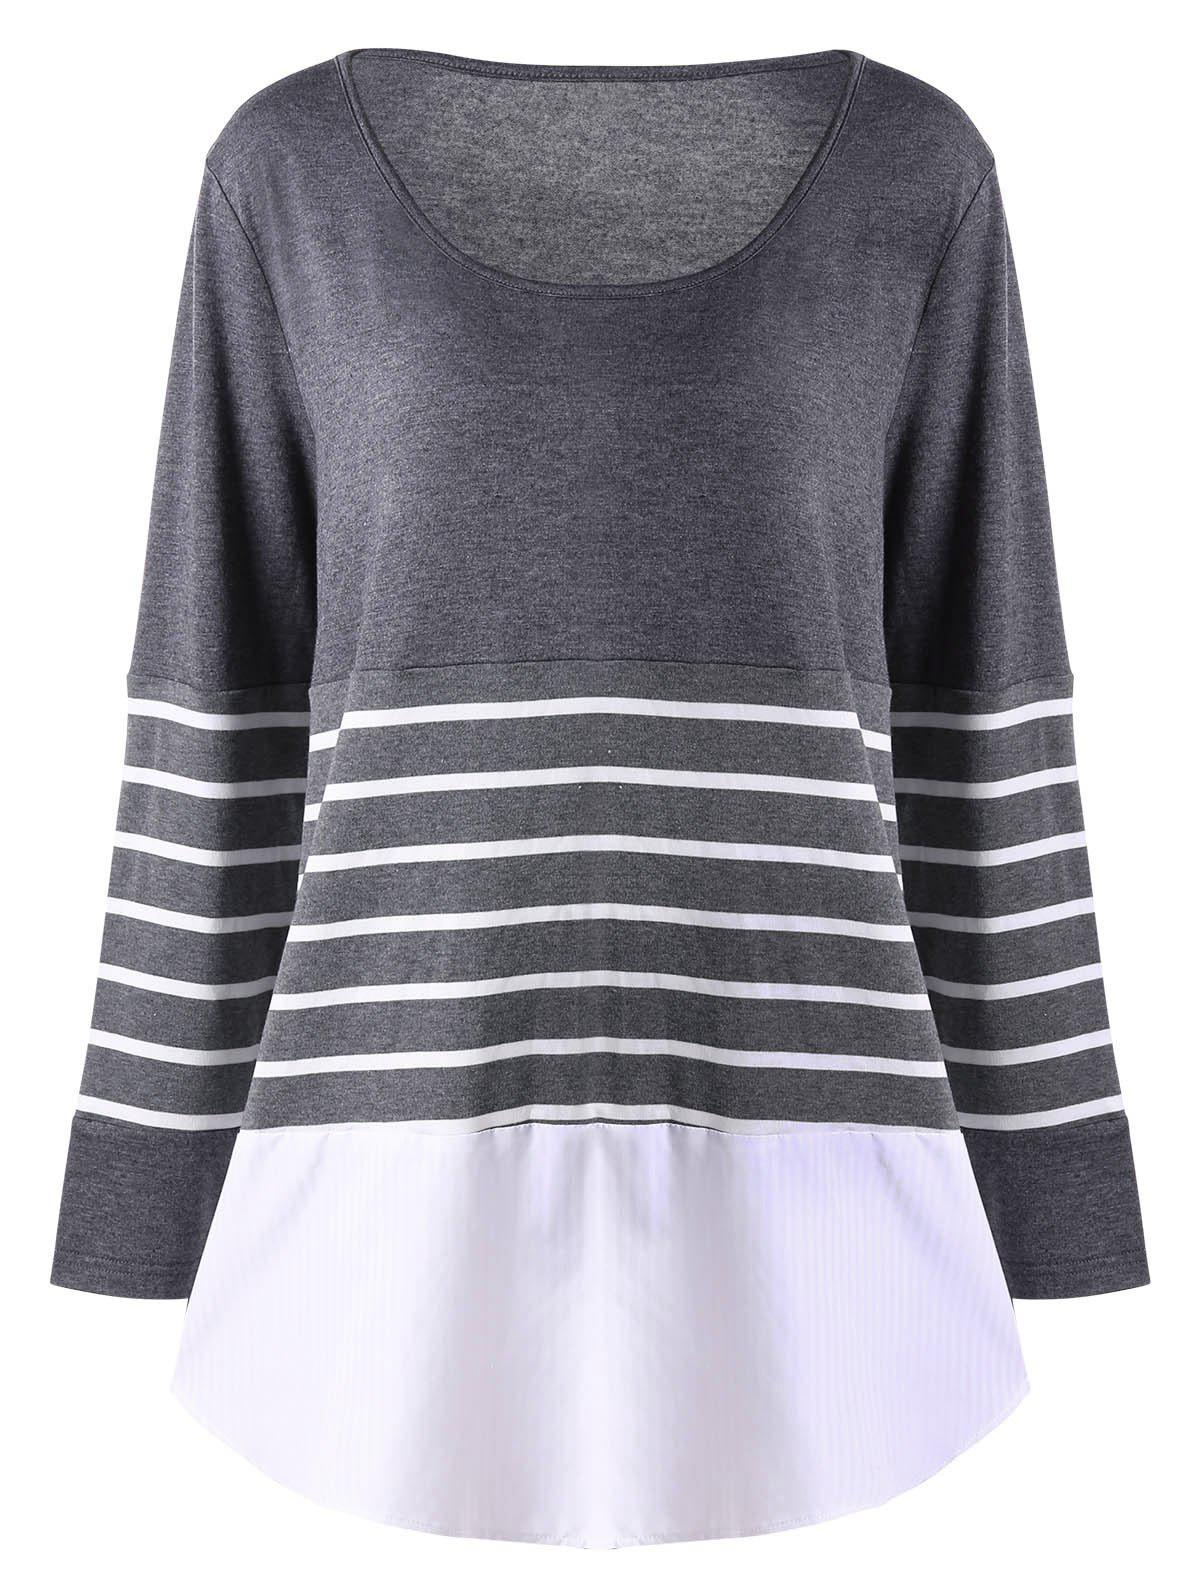 Plus Size Striped Long Sleeve TopWOMEN<br><br>Size: 2XL; Color: GRAY; Material: Polyester,Spandex; Shirt Length: Long; Sleeve Length: Full; Collar: Scoop Neck; Style: Casual; Season: Fall,Spring; Pattern Type: Striped; Weight: 0.3000kg; Package Contents: 1 x Top;